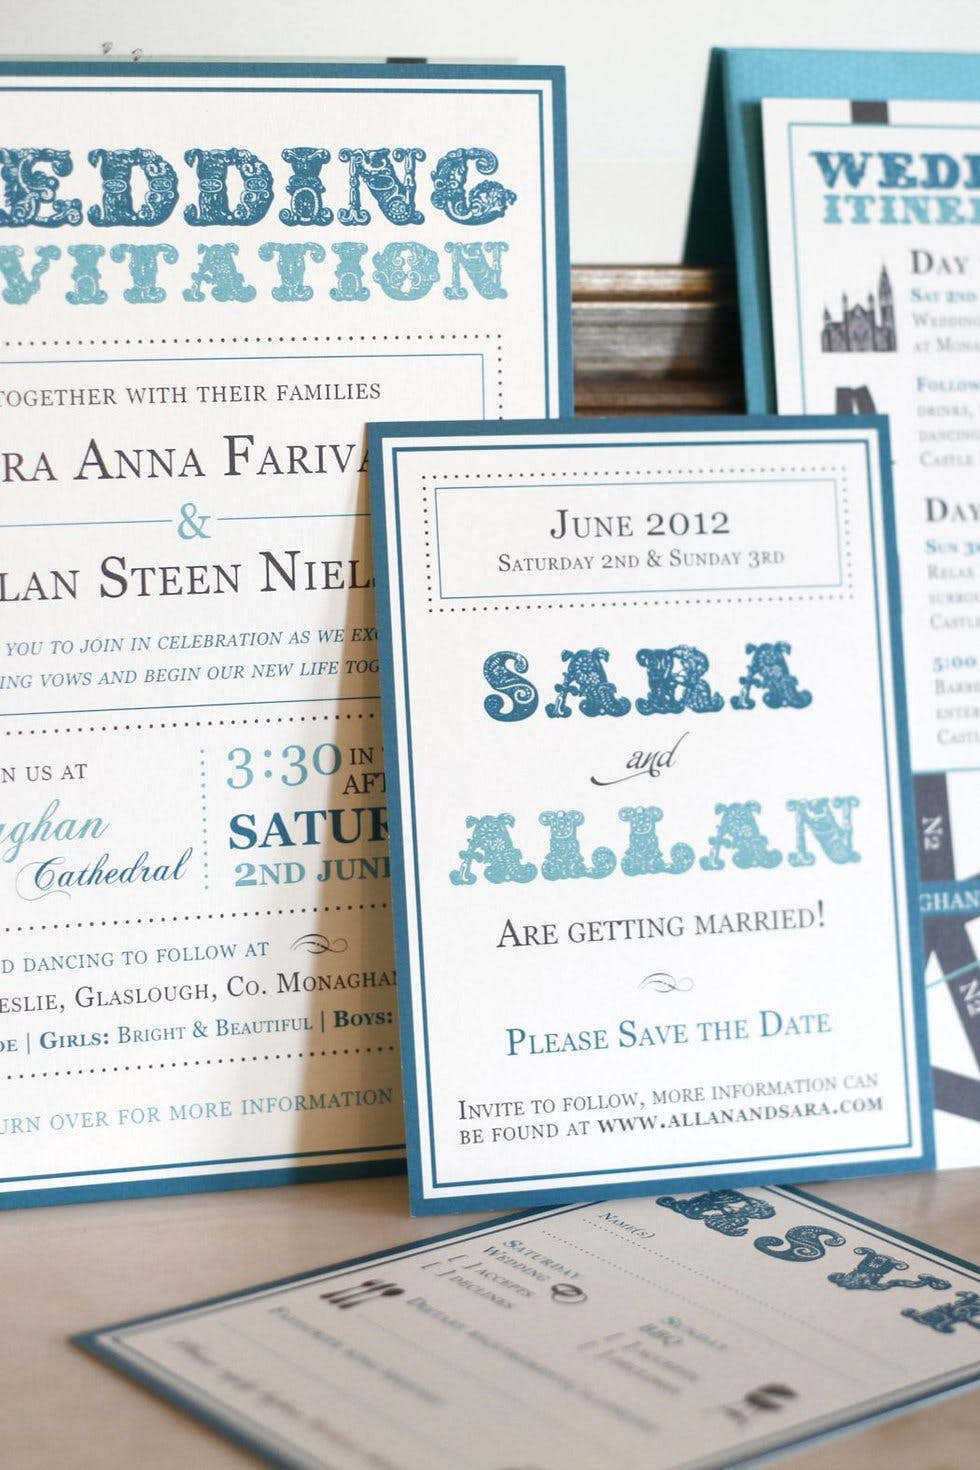 Wedding stationery design inspiration | Stylist